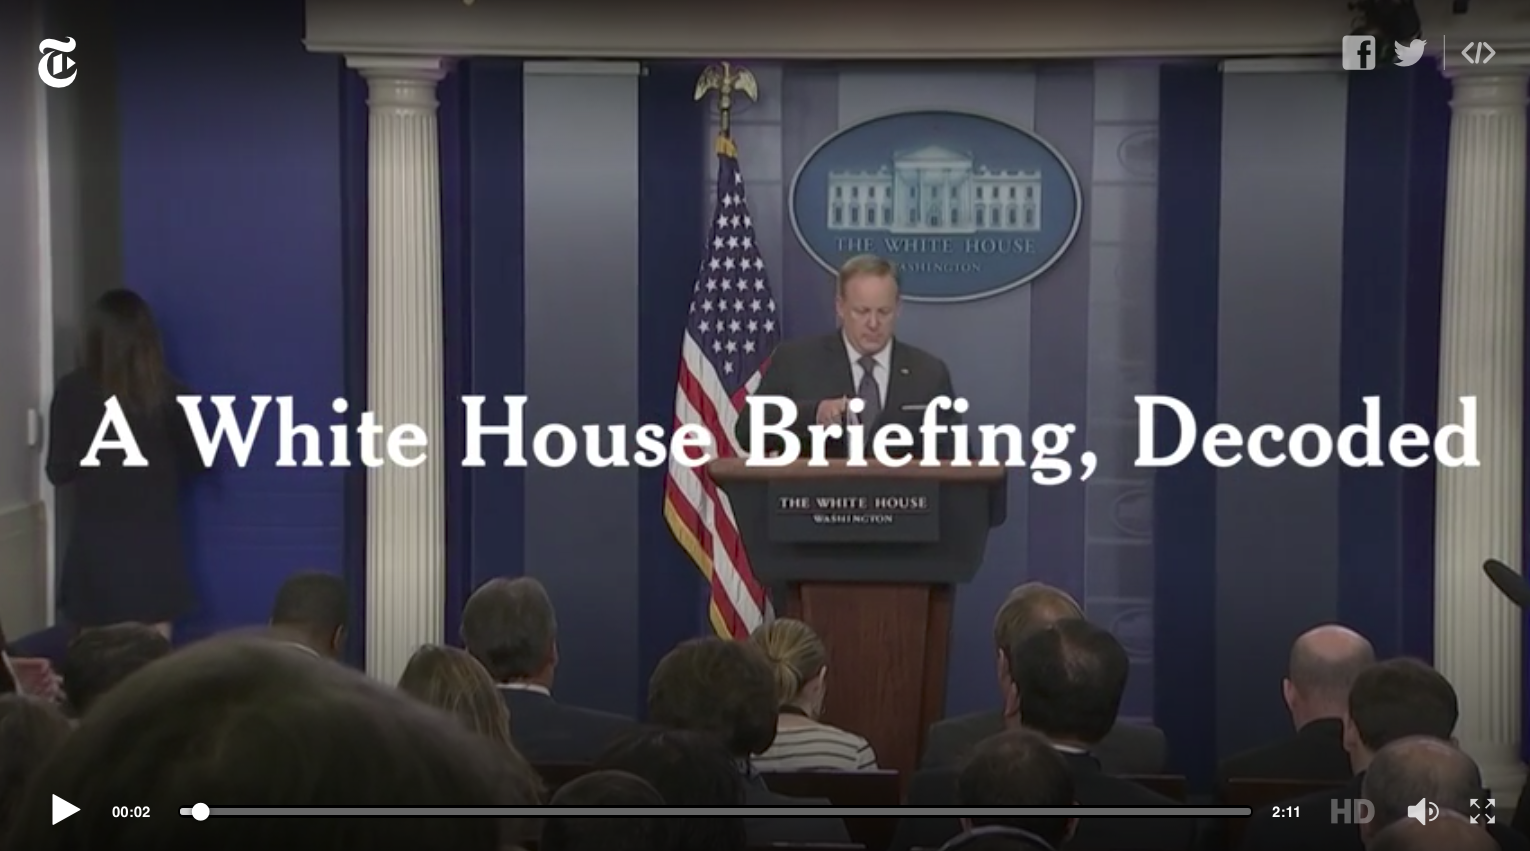 White House Press Secretary Sean Spicer at podium